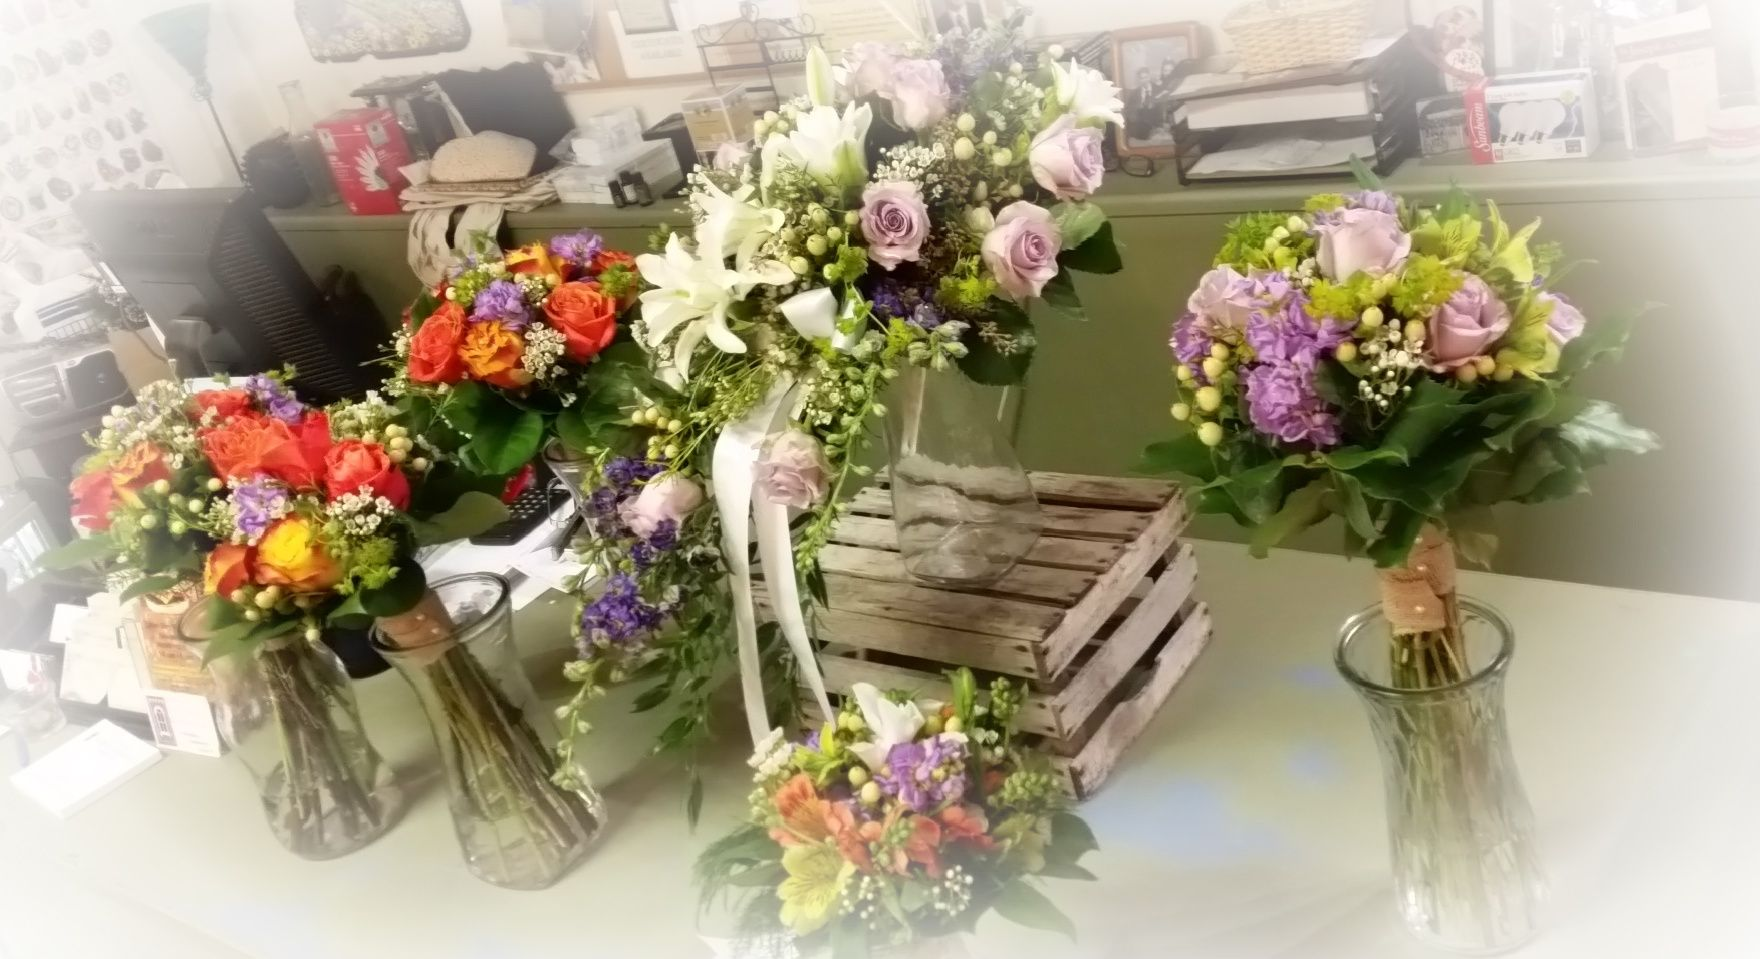 Wedding decor images zimbabwe  Pin by Kurtz Florist on Kurtz Florist Weddings  Pinterest